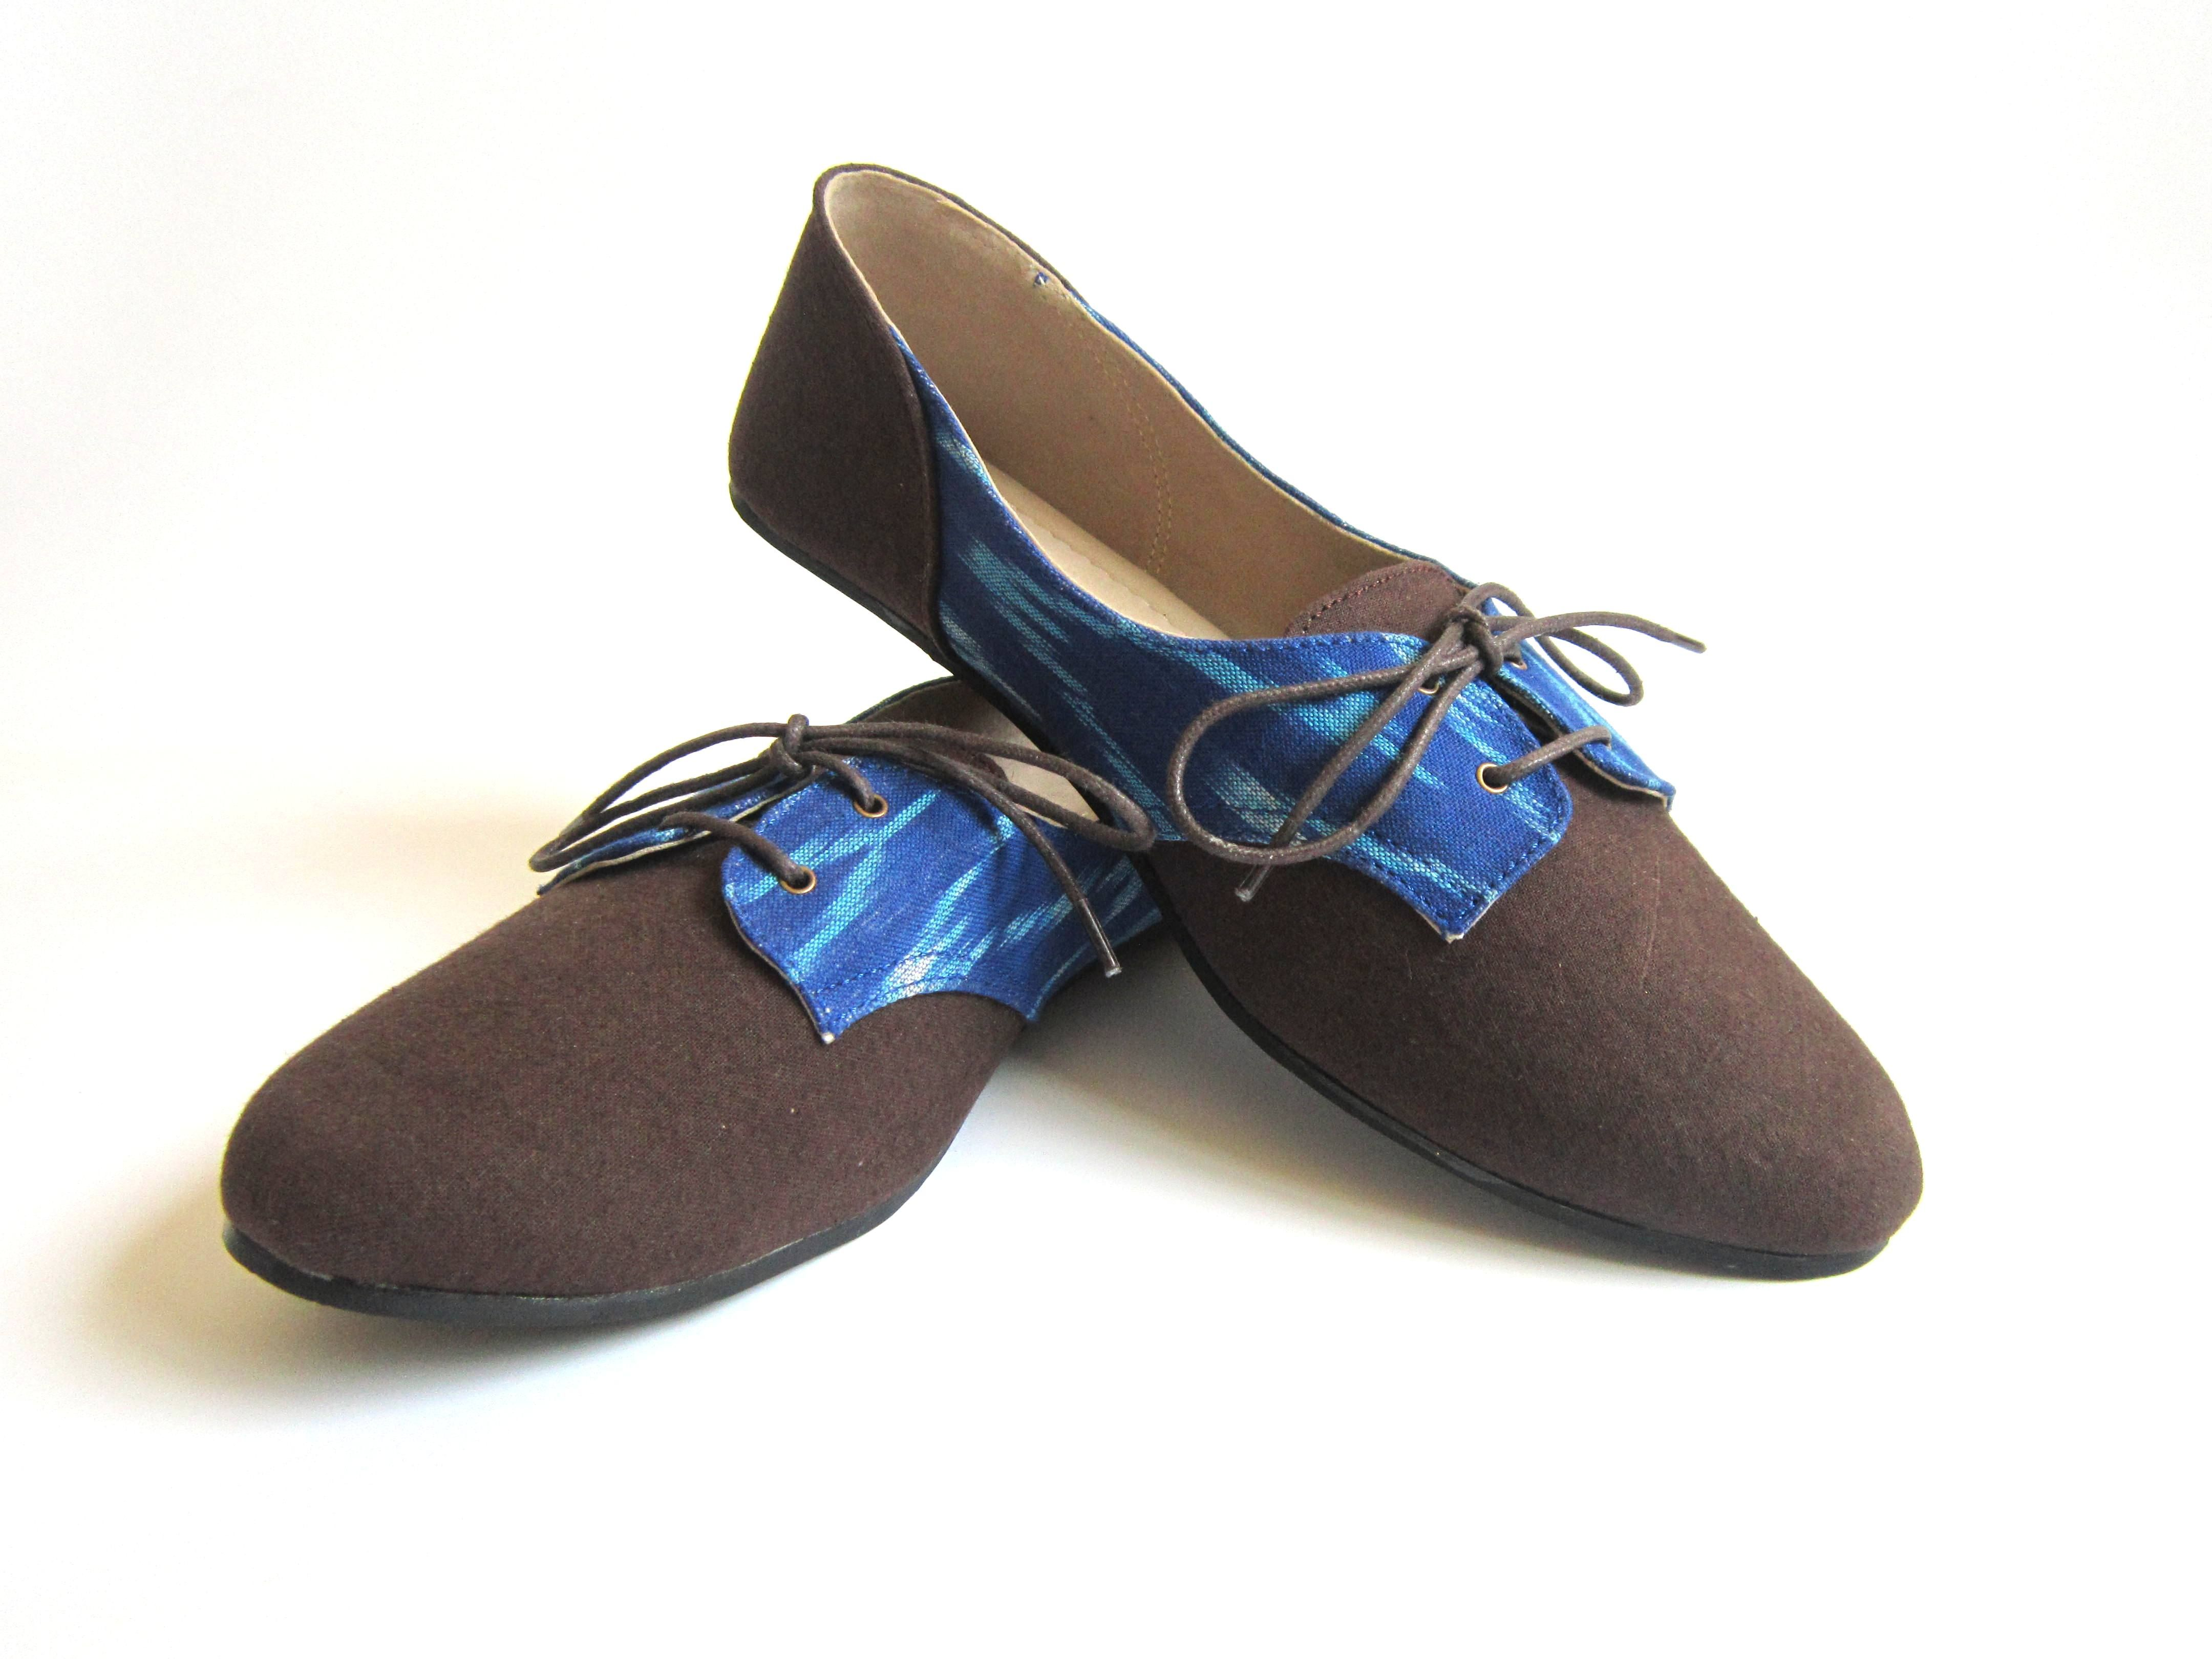 Venice Midnight Eco-friendly handmade footwear with brown solid brown and hand-weaved blue Ikat fabric. For more detials check  www.kurio.in   #ecofriendly #handmade #handweaved #ikat #greensoles #comfort #designer #flat #derby #shoes #makeinindia #madeinindia #india